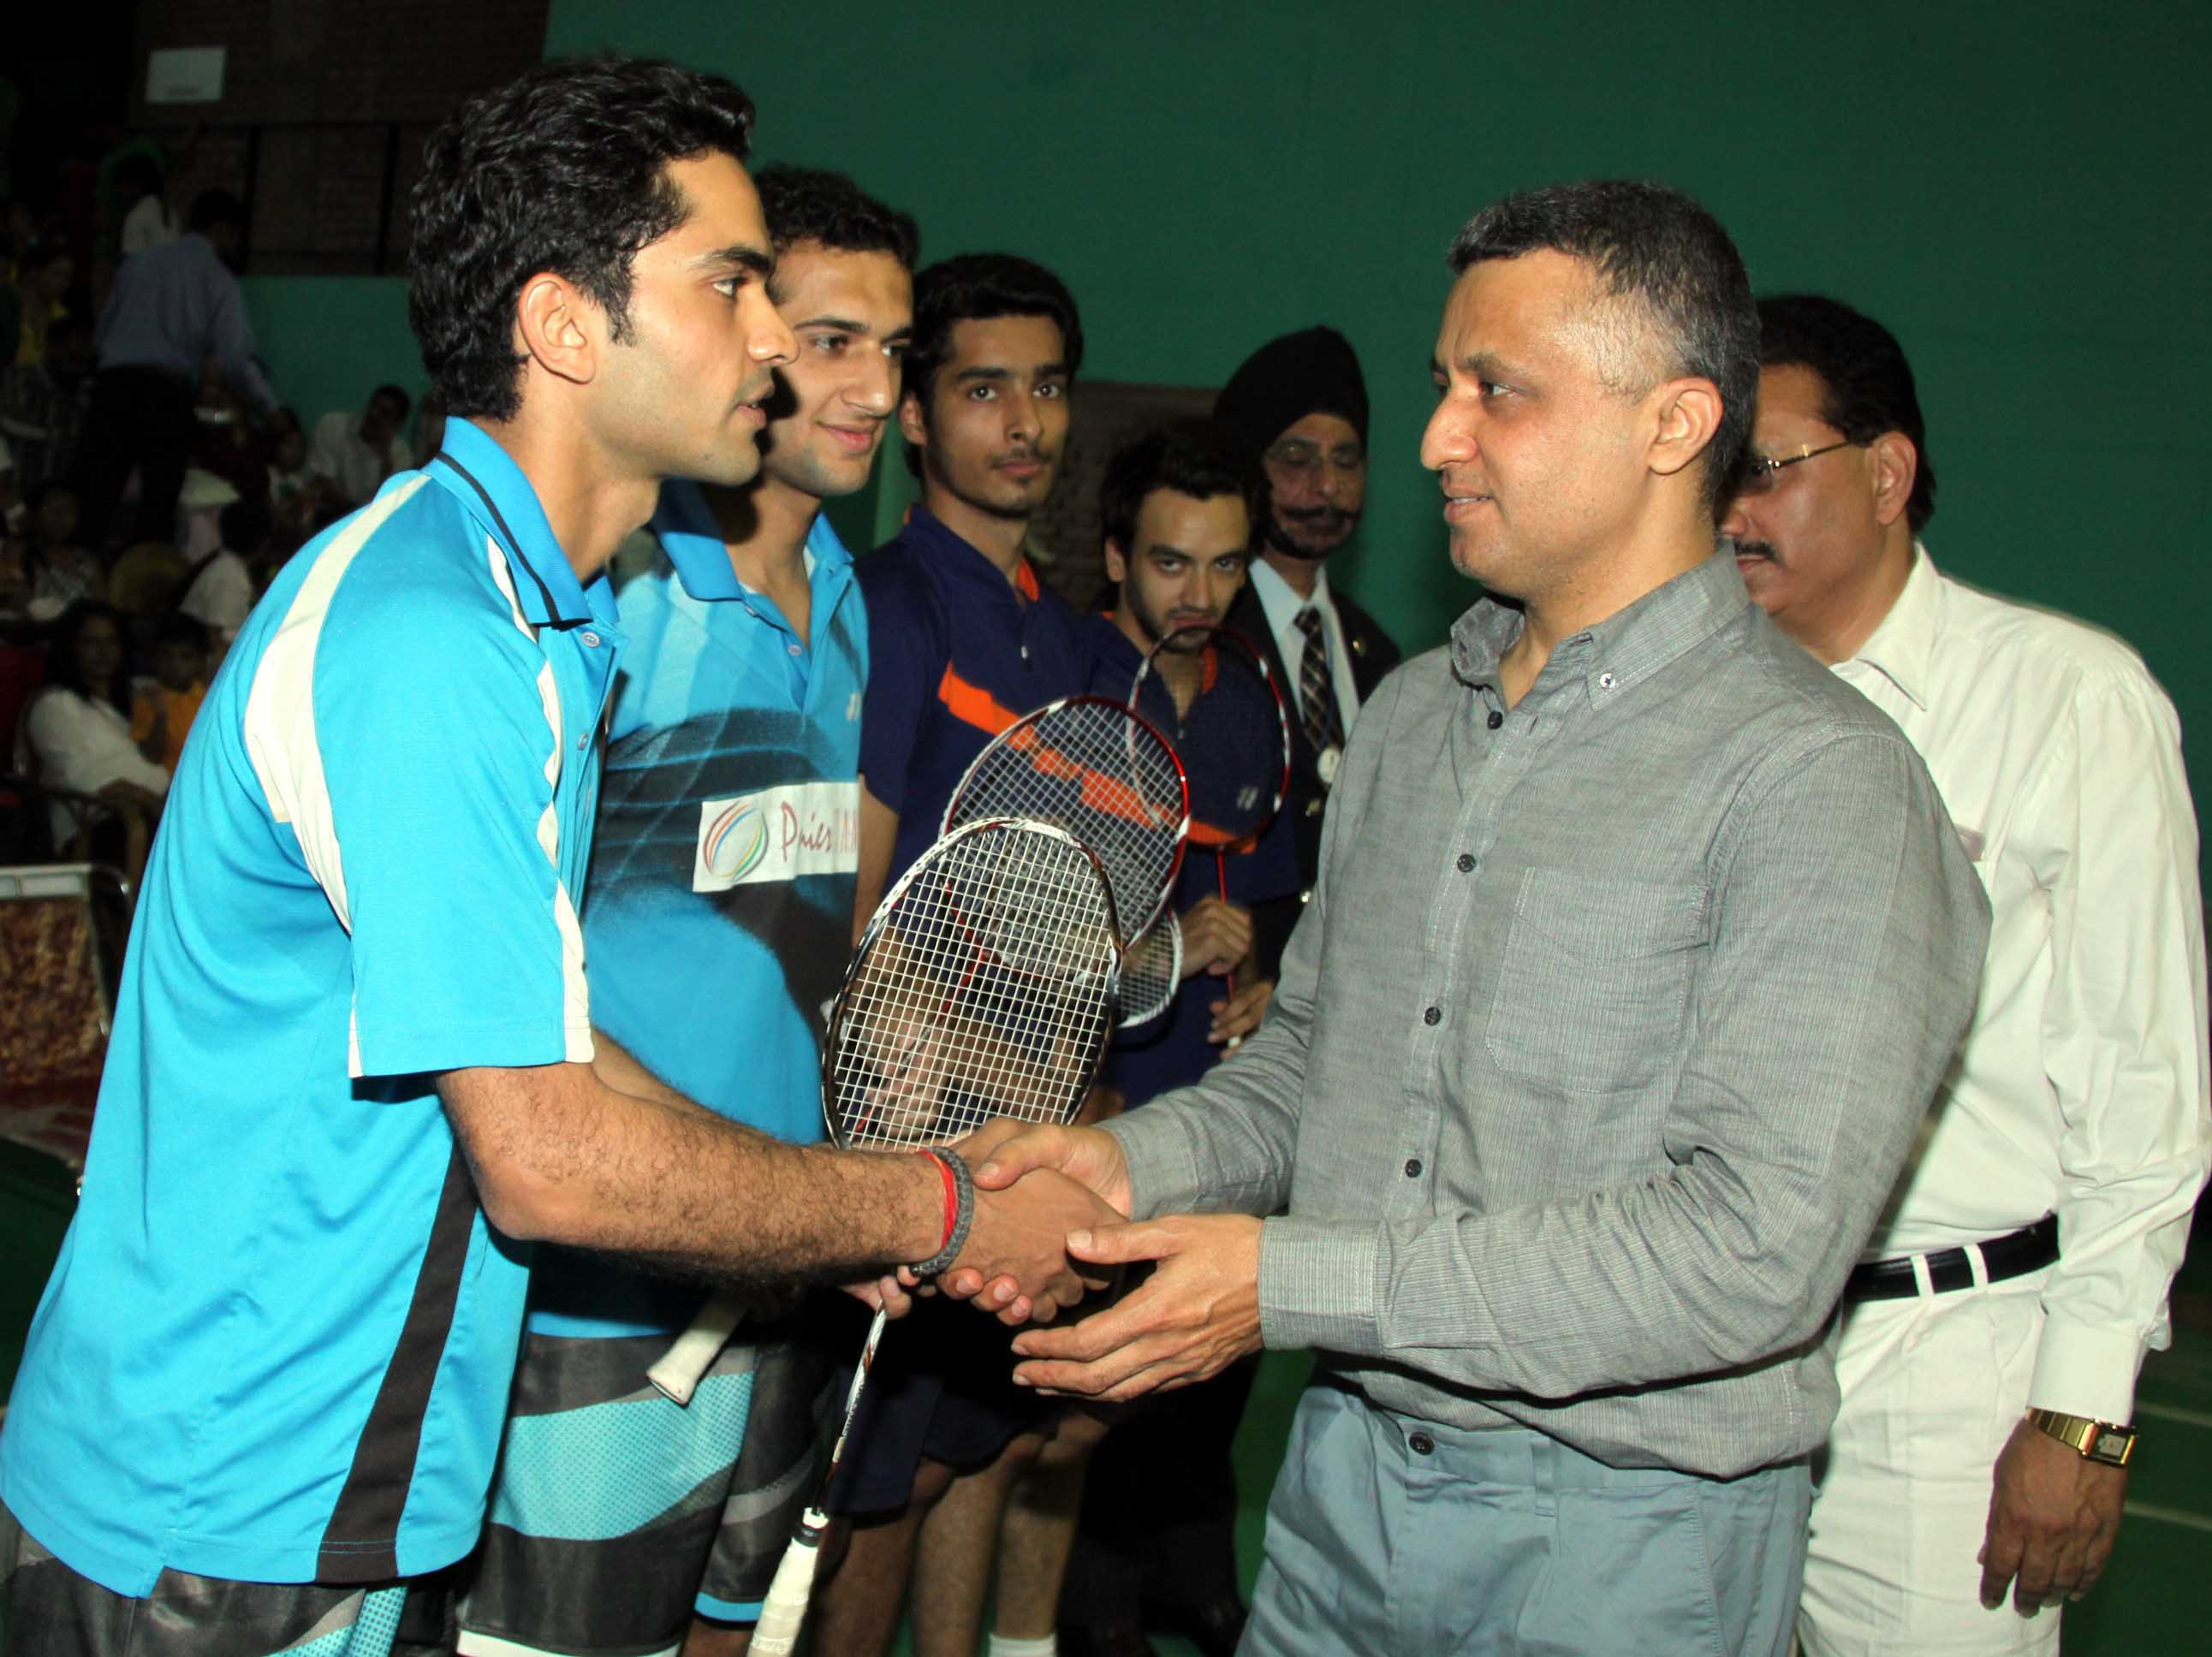 UT Finance-cum-Sports Secretary, Mr. Sarvjit Singh being introduced with the players at the Opening Ceremony of Tricity Li-ning Junior/Sub Junior Talent Hunt Badminton Tournament-2014 at Sports Stadium, Sector-42, Chandigarh on Wednesday, April 16, 2014.